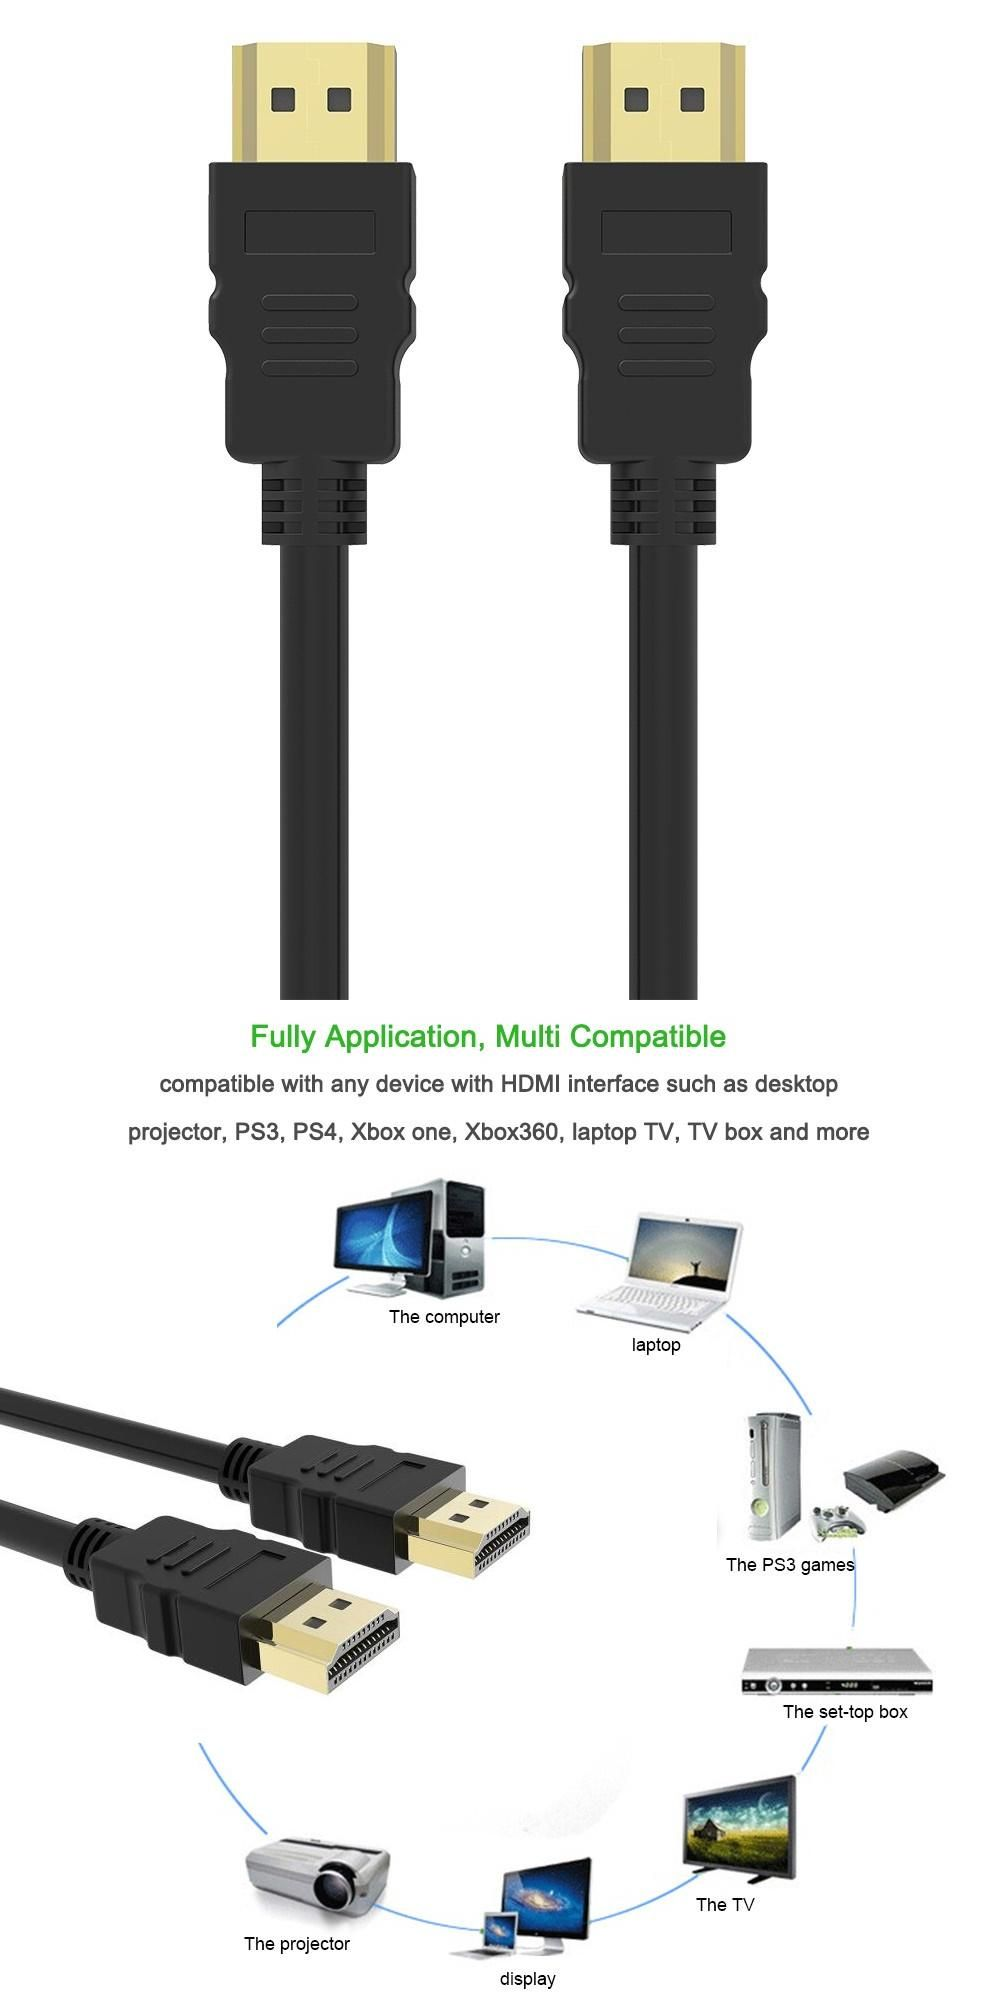 Visit To Buy Hdmi Cable 50cm 1m 2m 3m 5m 10m Hdmi To Hdmi Cable Hdmi 1 4 4k 1080p 3d For Ps3 Projector Hd Lcd Apple Tv Projector Hd Computer